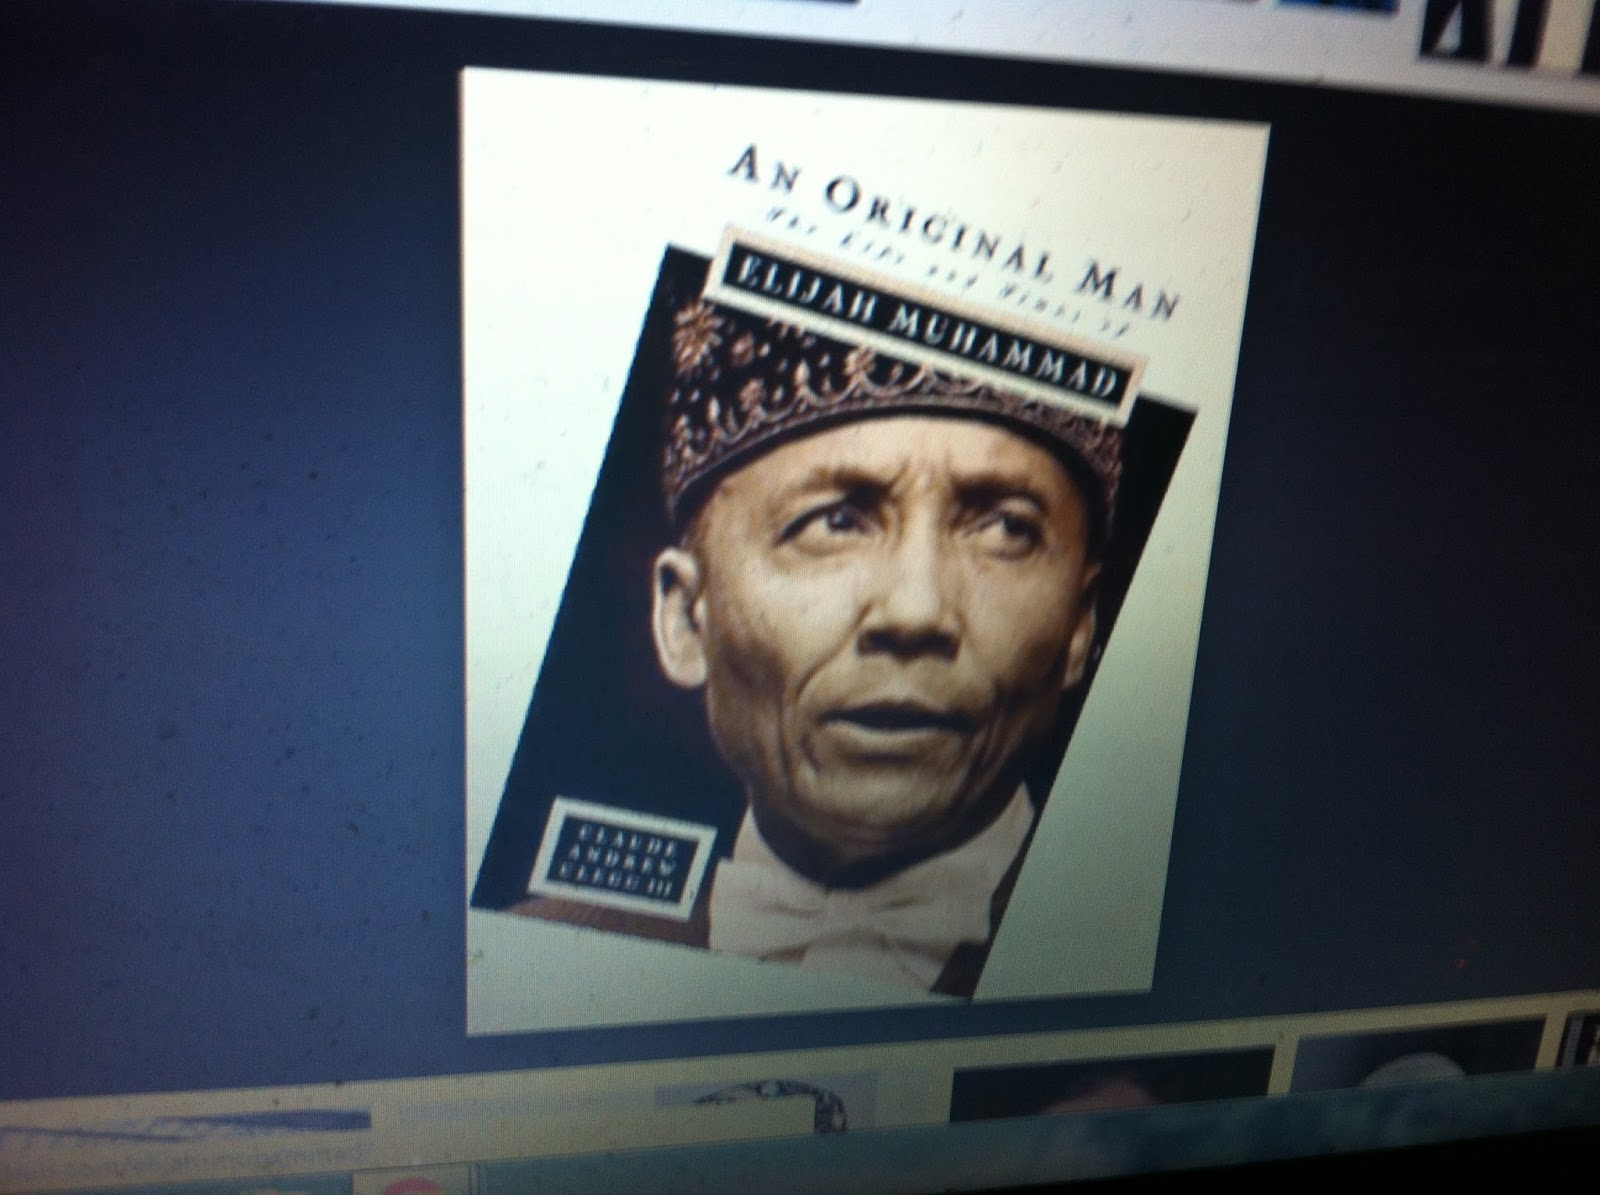 a biography of elijah muhammad a religious leader of georgia Elijah muhammad, the most prominent leader of the nation of islam (noi), was born elijah poole in sandersville, georgia religious leaders.